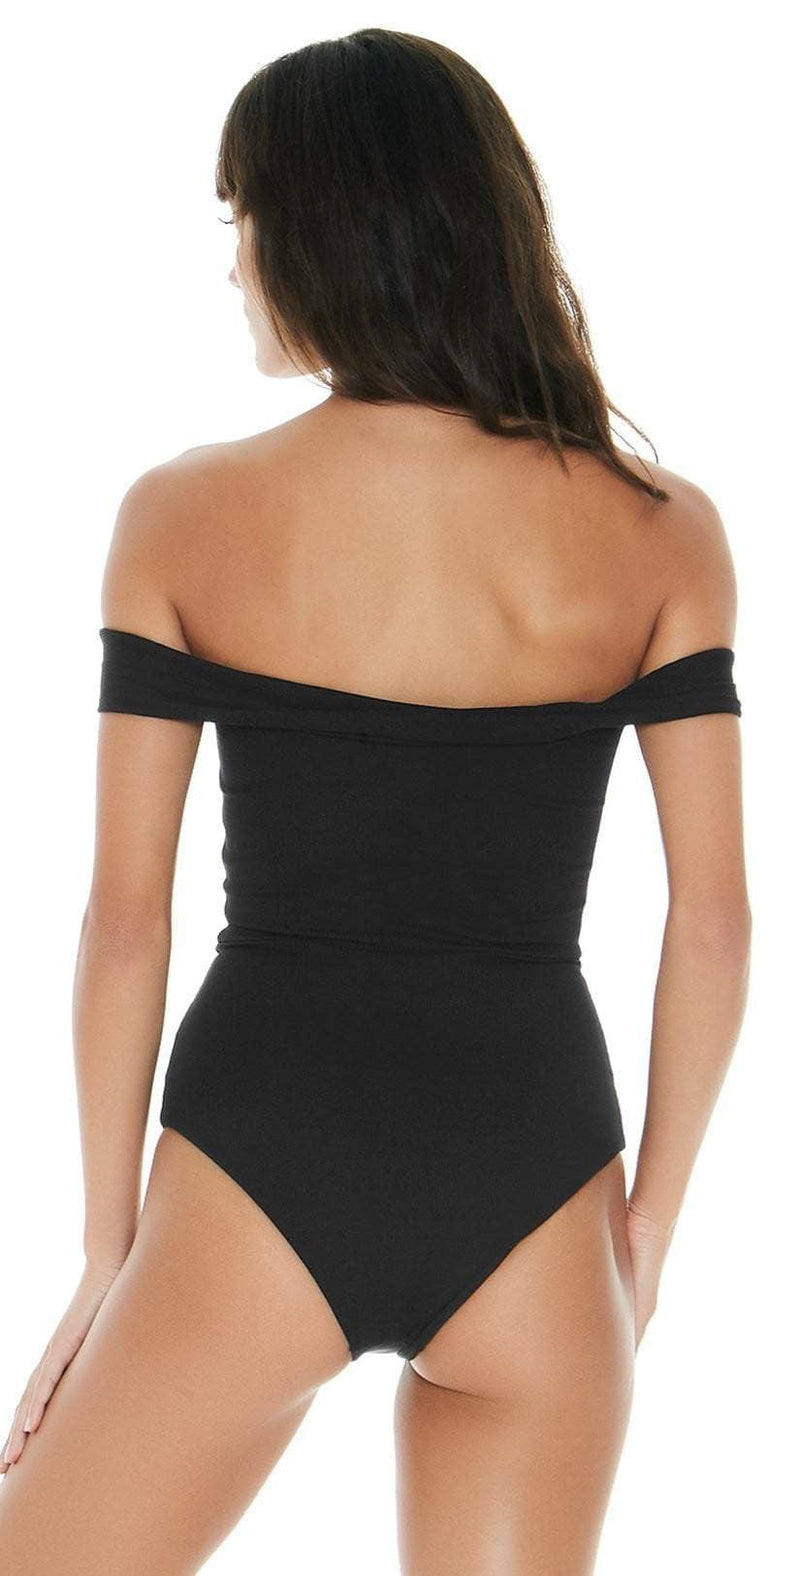 L Space Anja One Piece In Black RHAJMC18-BLK: